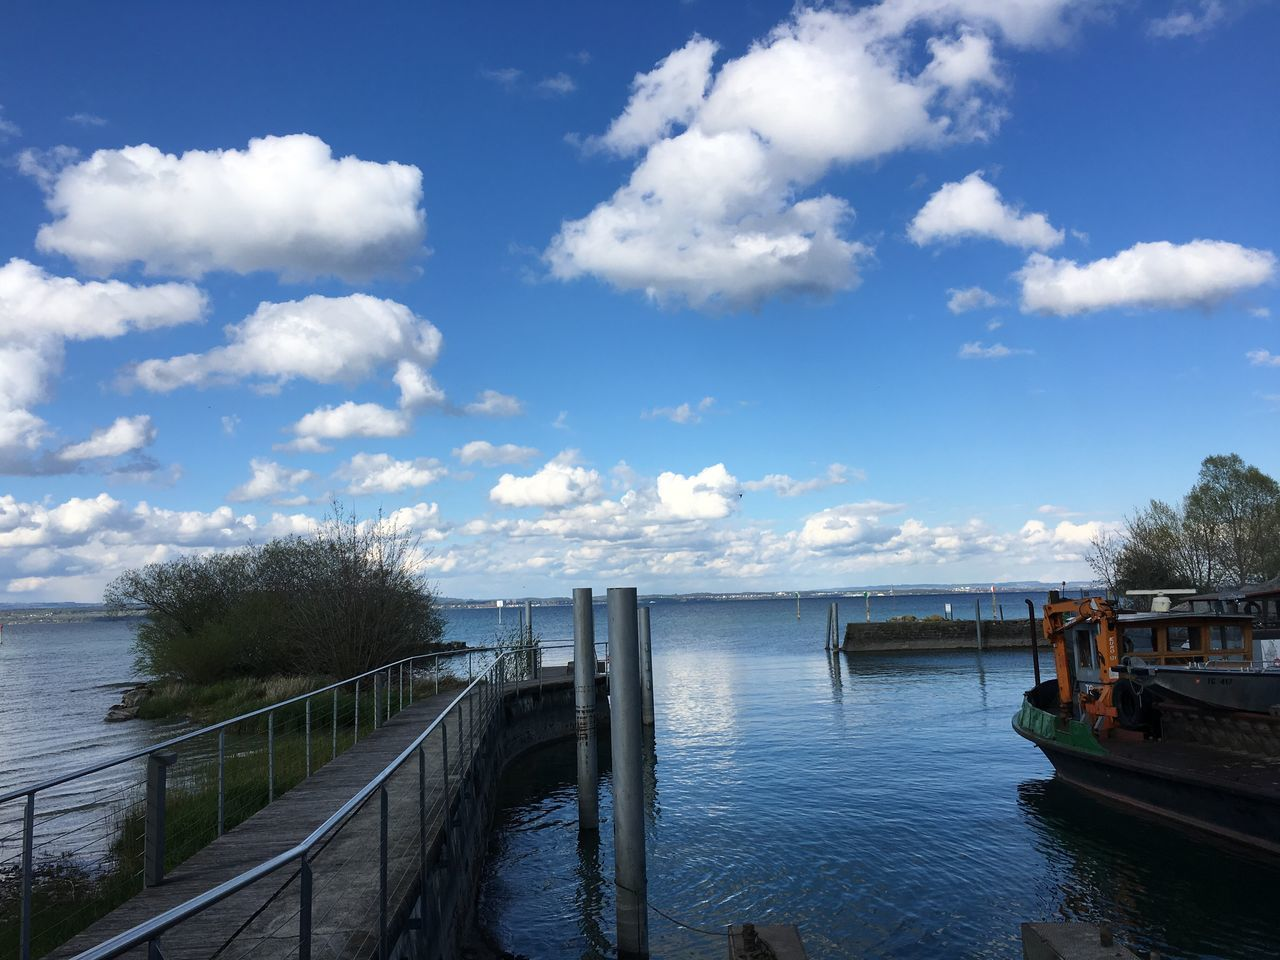 water, cloud - sky, sky, day, railing, nature, sea, scenics, tranquility, tranquil scene, outdoors, beauty in nature, no people, built structure, nautical vessel, tree, horizon over water, architecture